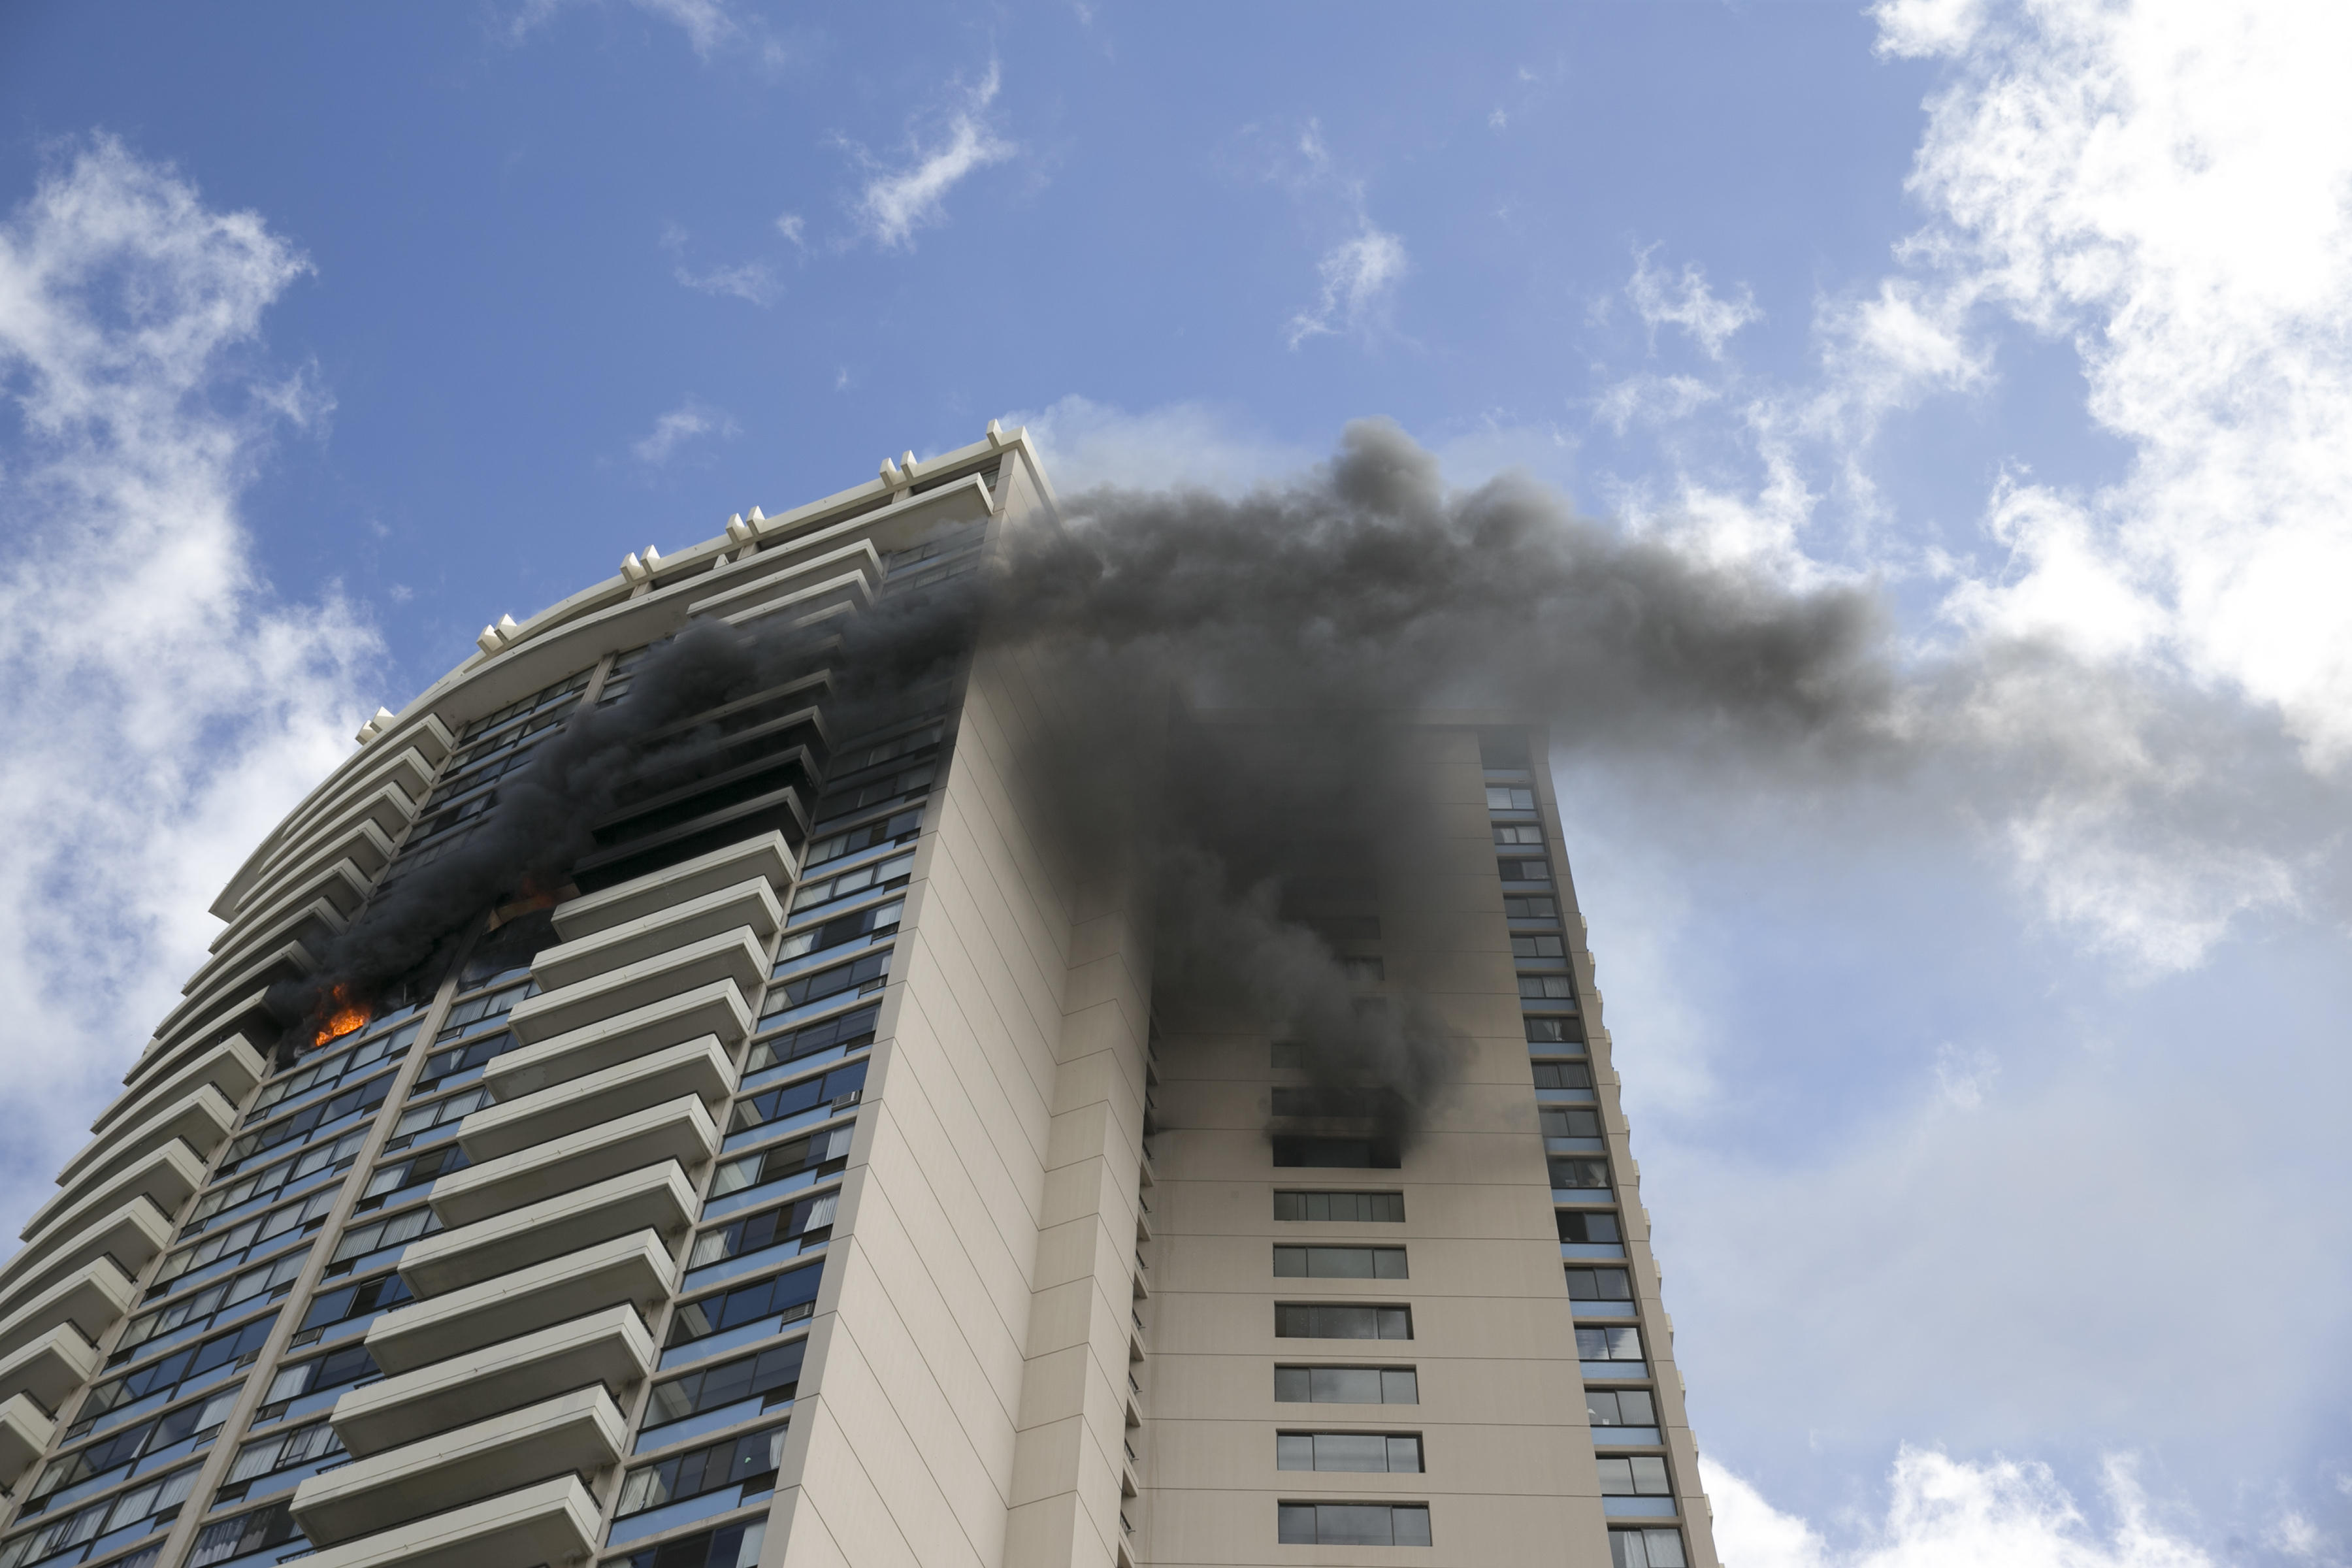 3 dead in fire in hawaii high rise apartment complex with no 3 dead in fire in hawaii high rise apartment complex with no sprinklers cbs news